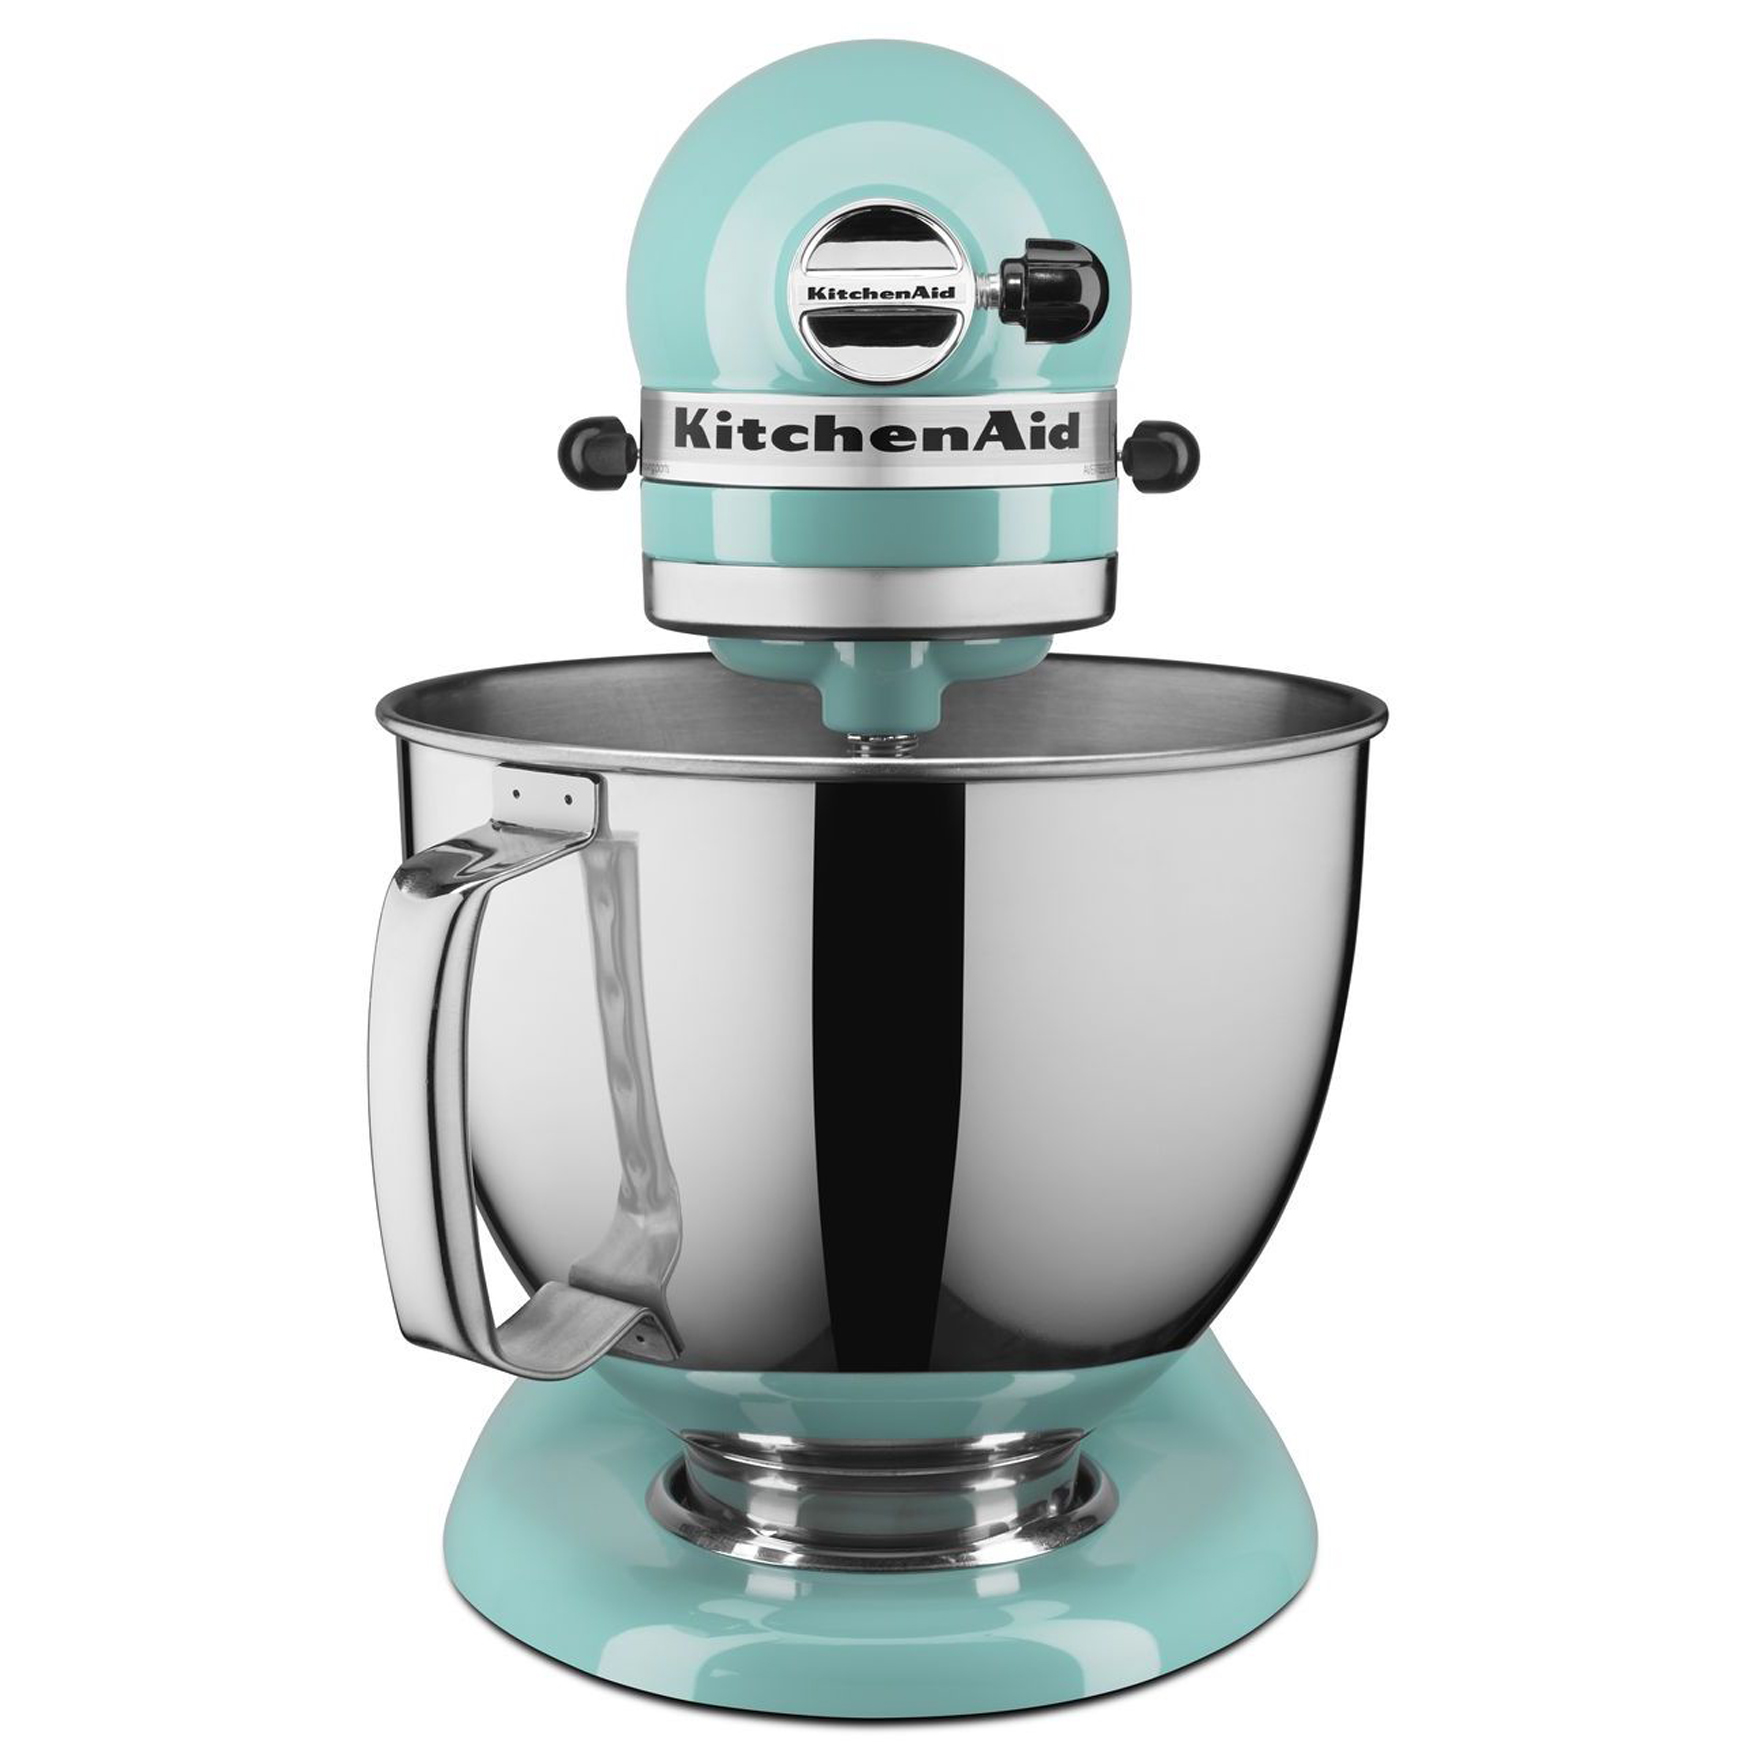 KitchenAid Artisan Series 5 Quart Stand Mixer - Pistachio